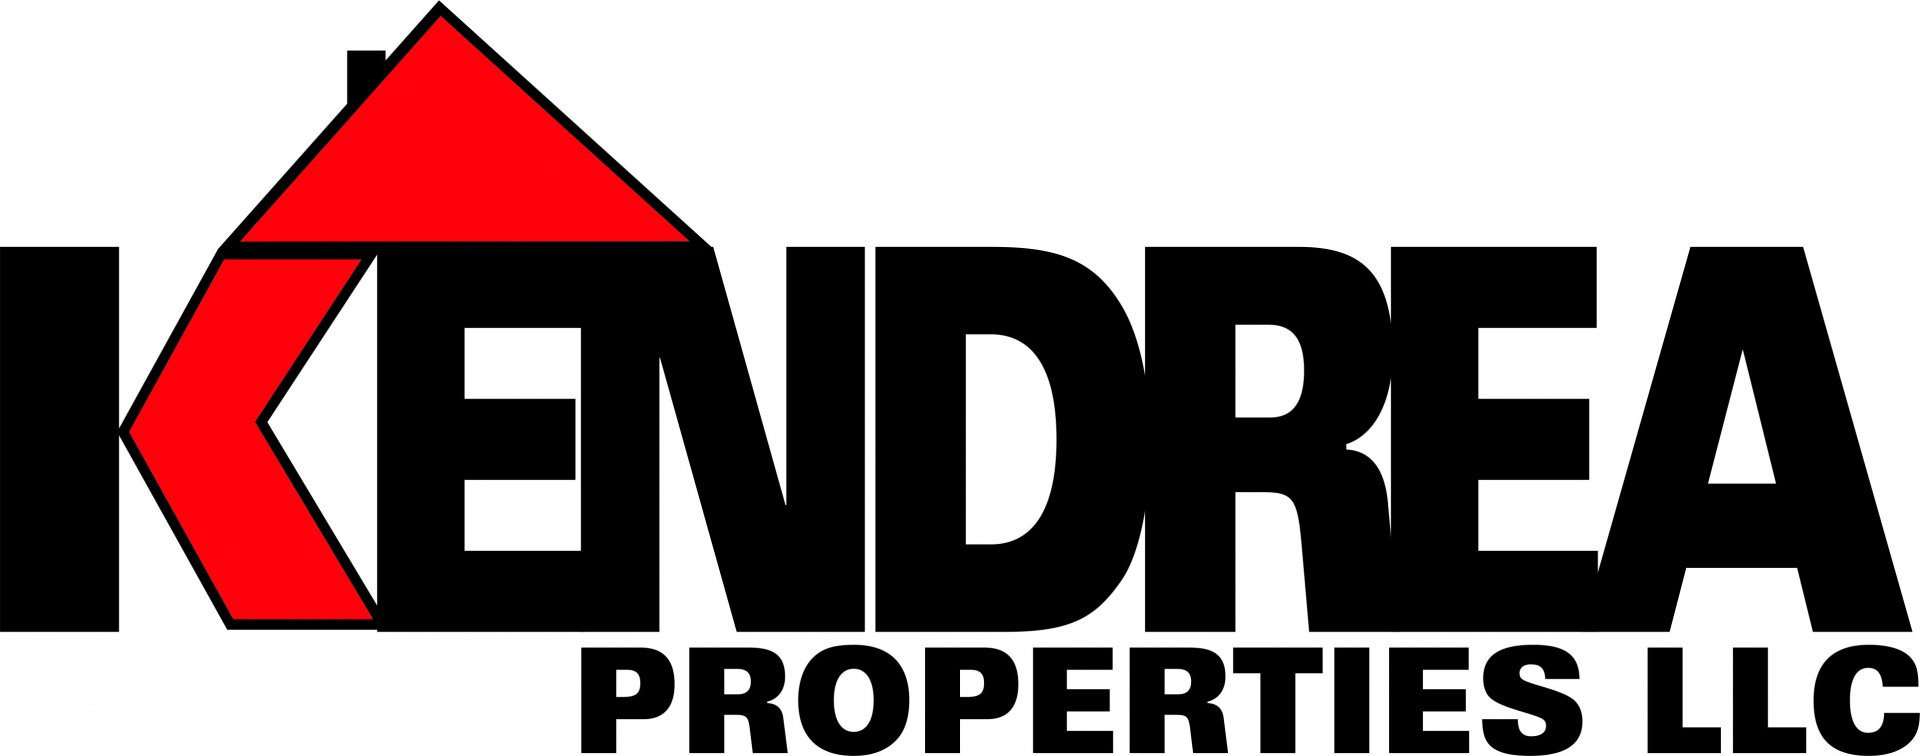 Kendrea Properties, LLC  logo